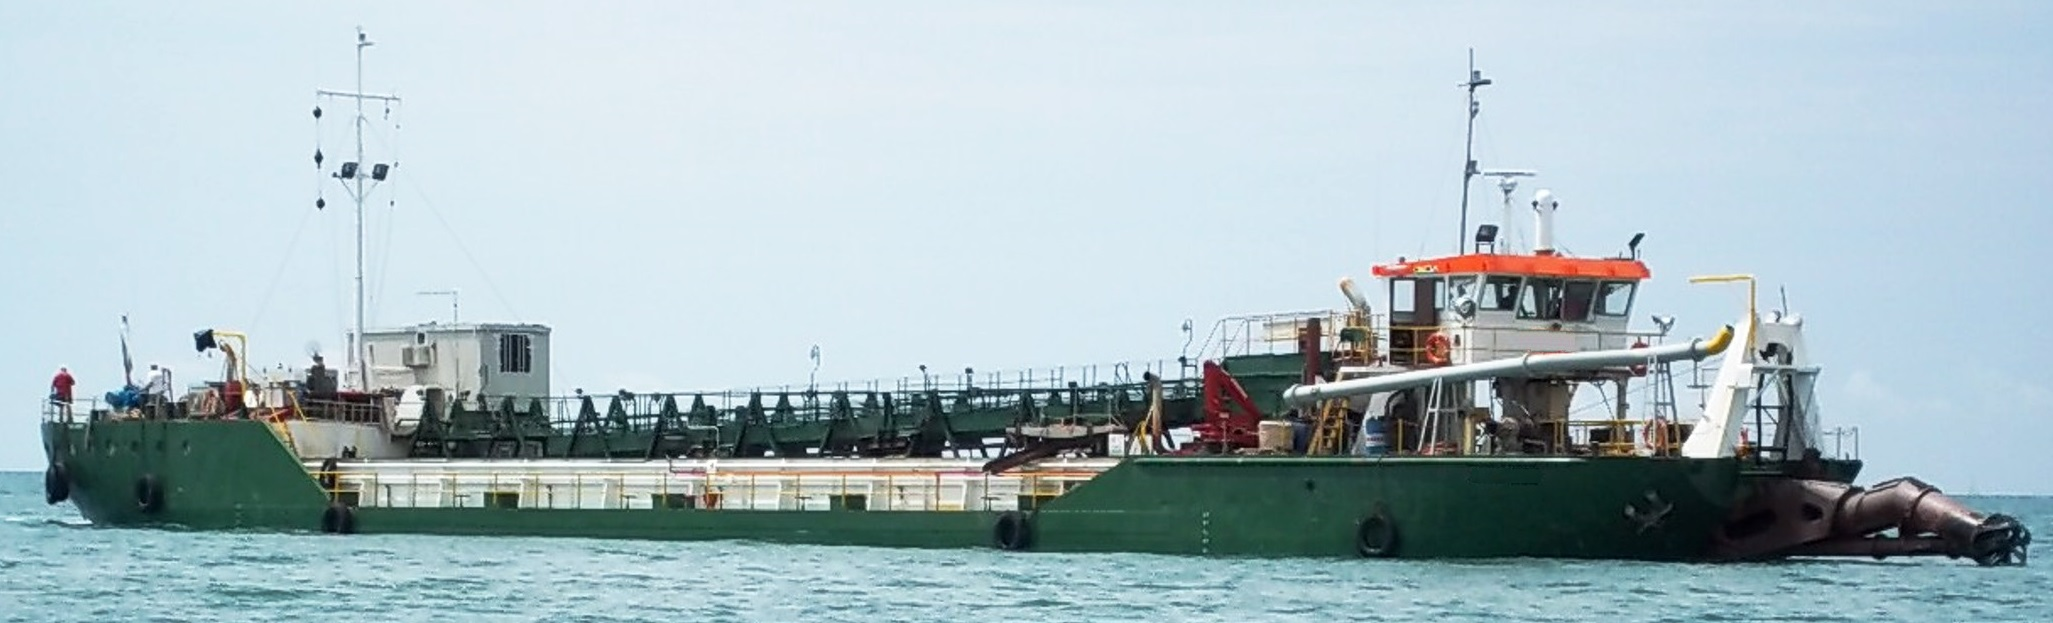 500 m3 Cutter Suction Hopper Dredger - Van Loon Maritime